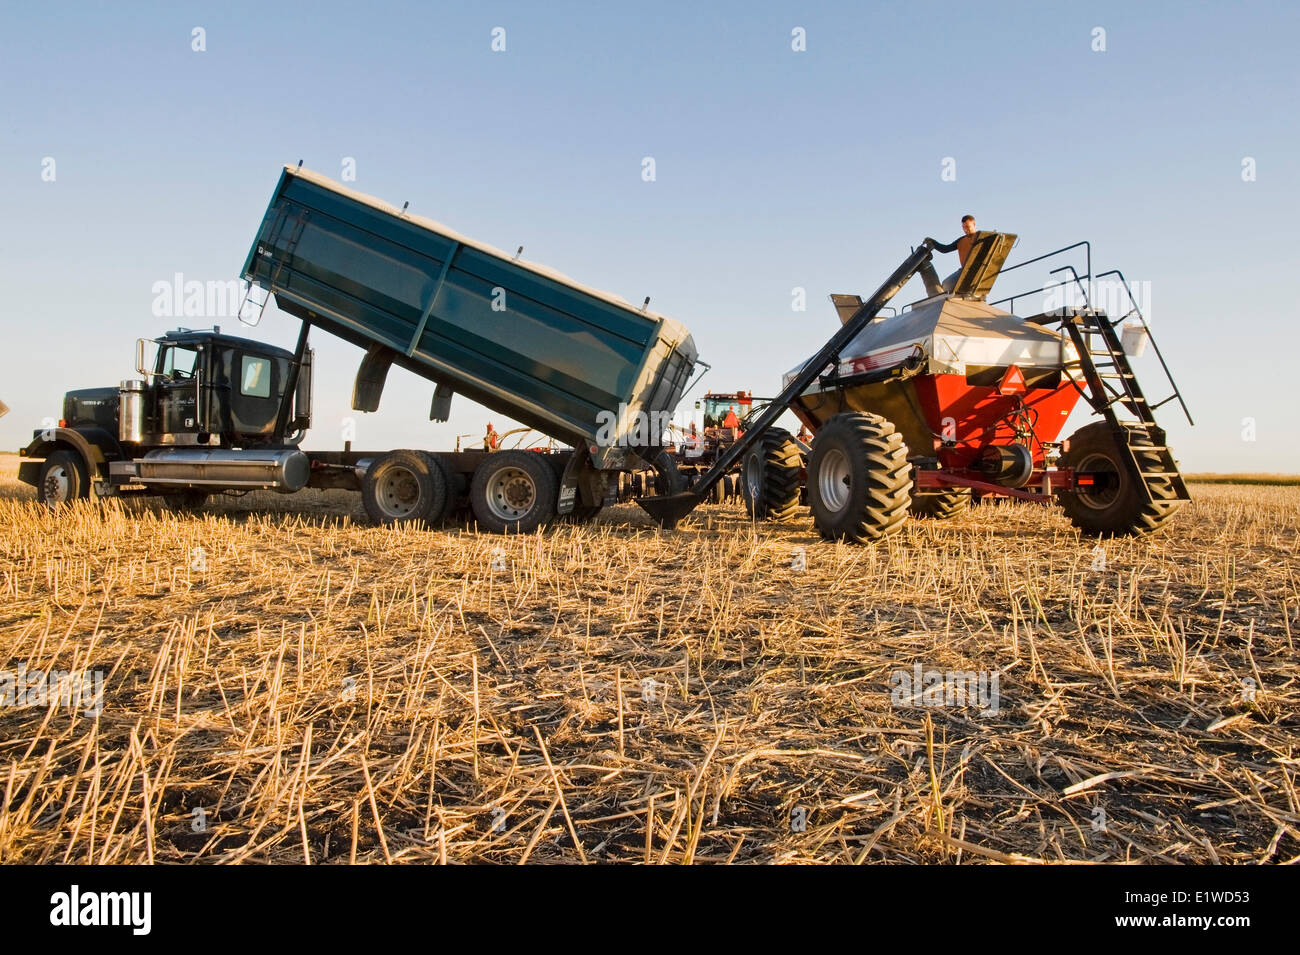 young farmer loading a seeding tank with winter wheat seed and fertilizer, near Lorette, Manitoba, Canada - Stock Image